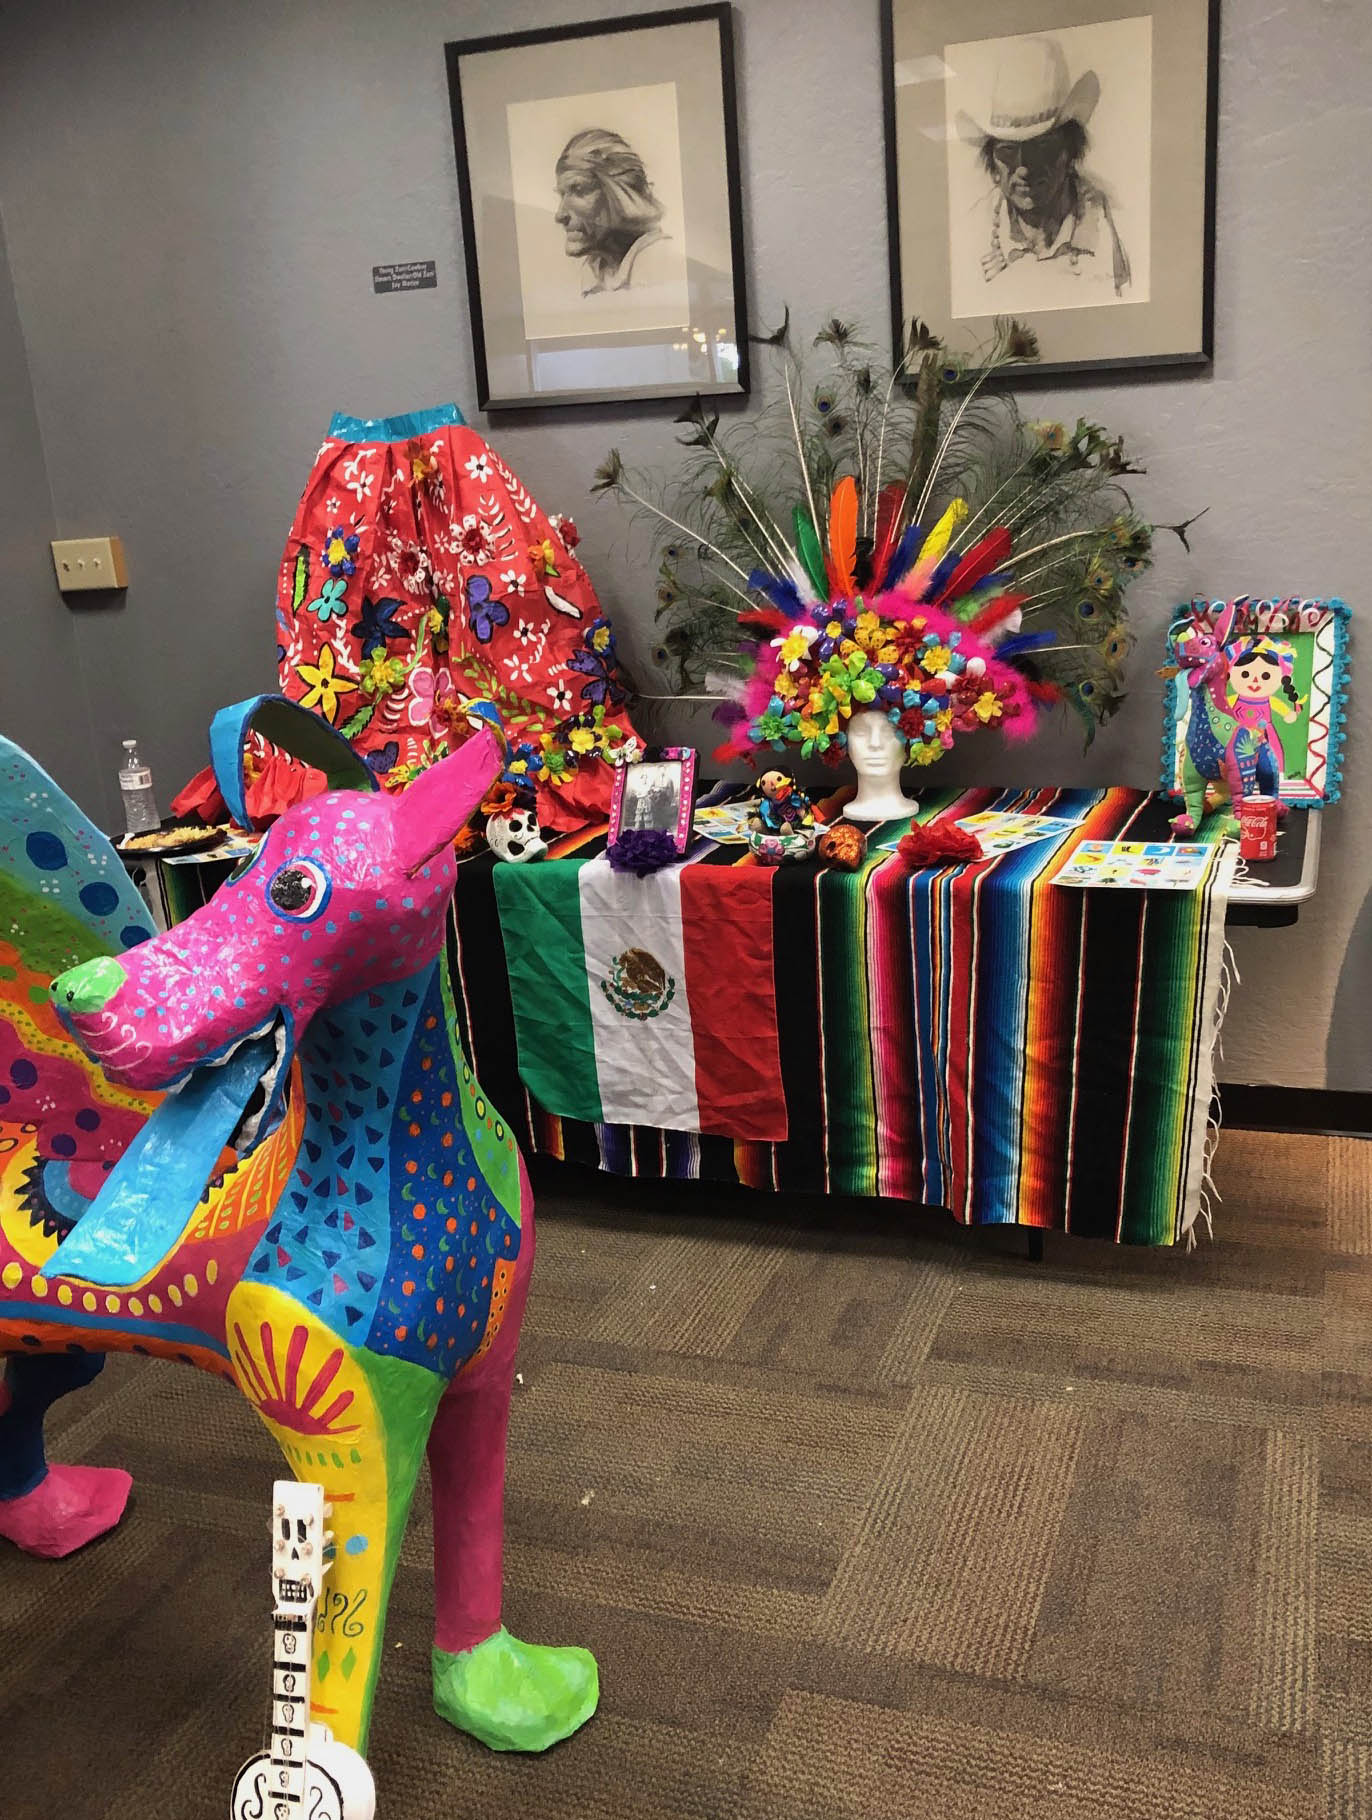 Colorful dog-like sculpture in front of a Mexican heritage display.